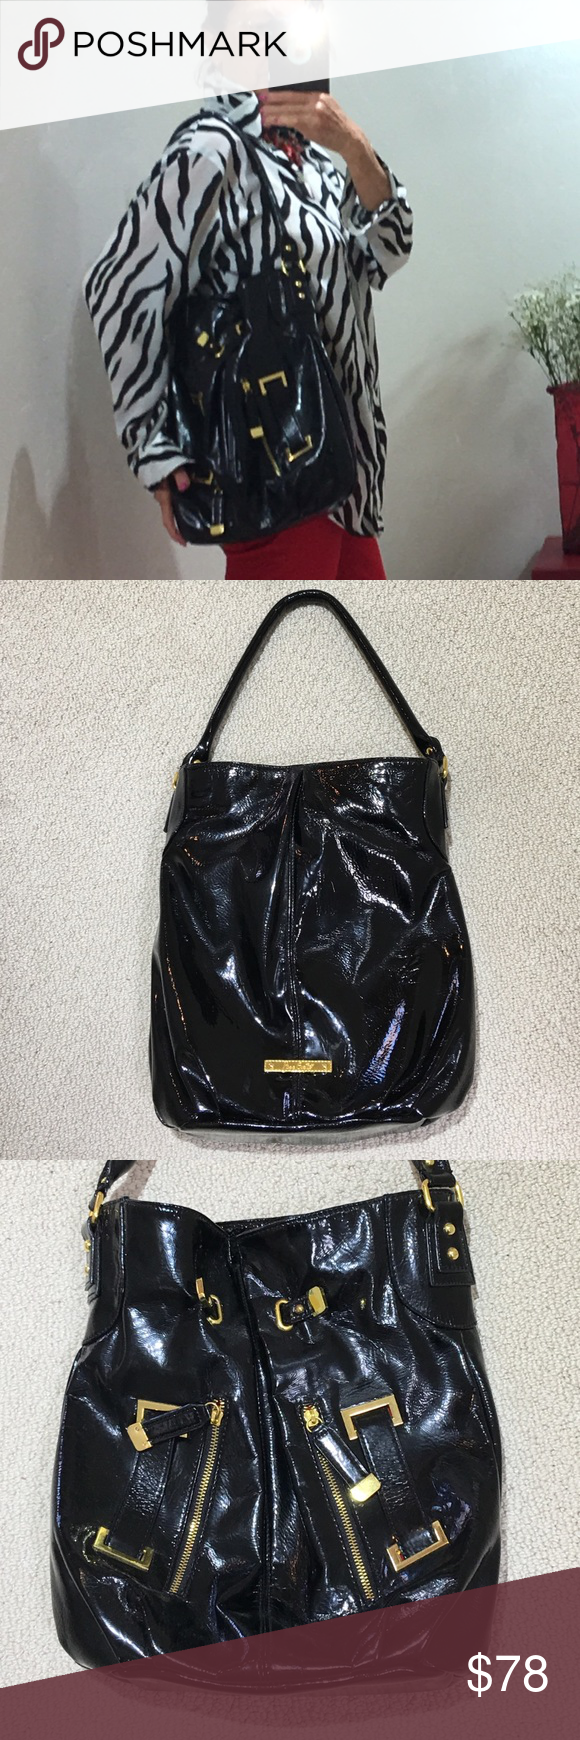 Miss Gustto Black Patent Leather Bag This Edgy Super Fun All Time Classic Is The Perfect Size With Multiple Pockets Inside And Zippered